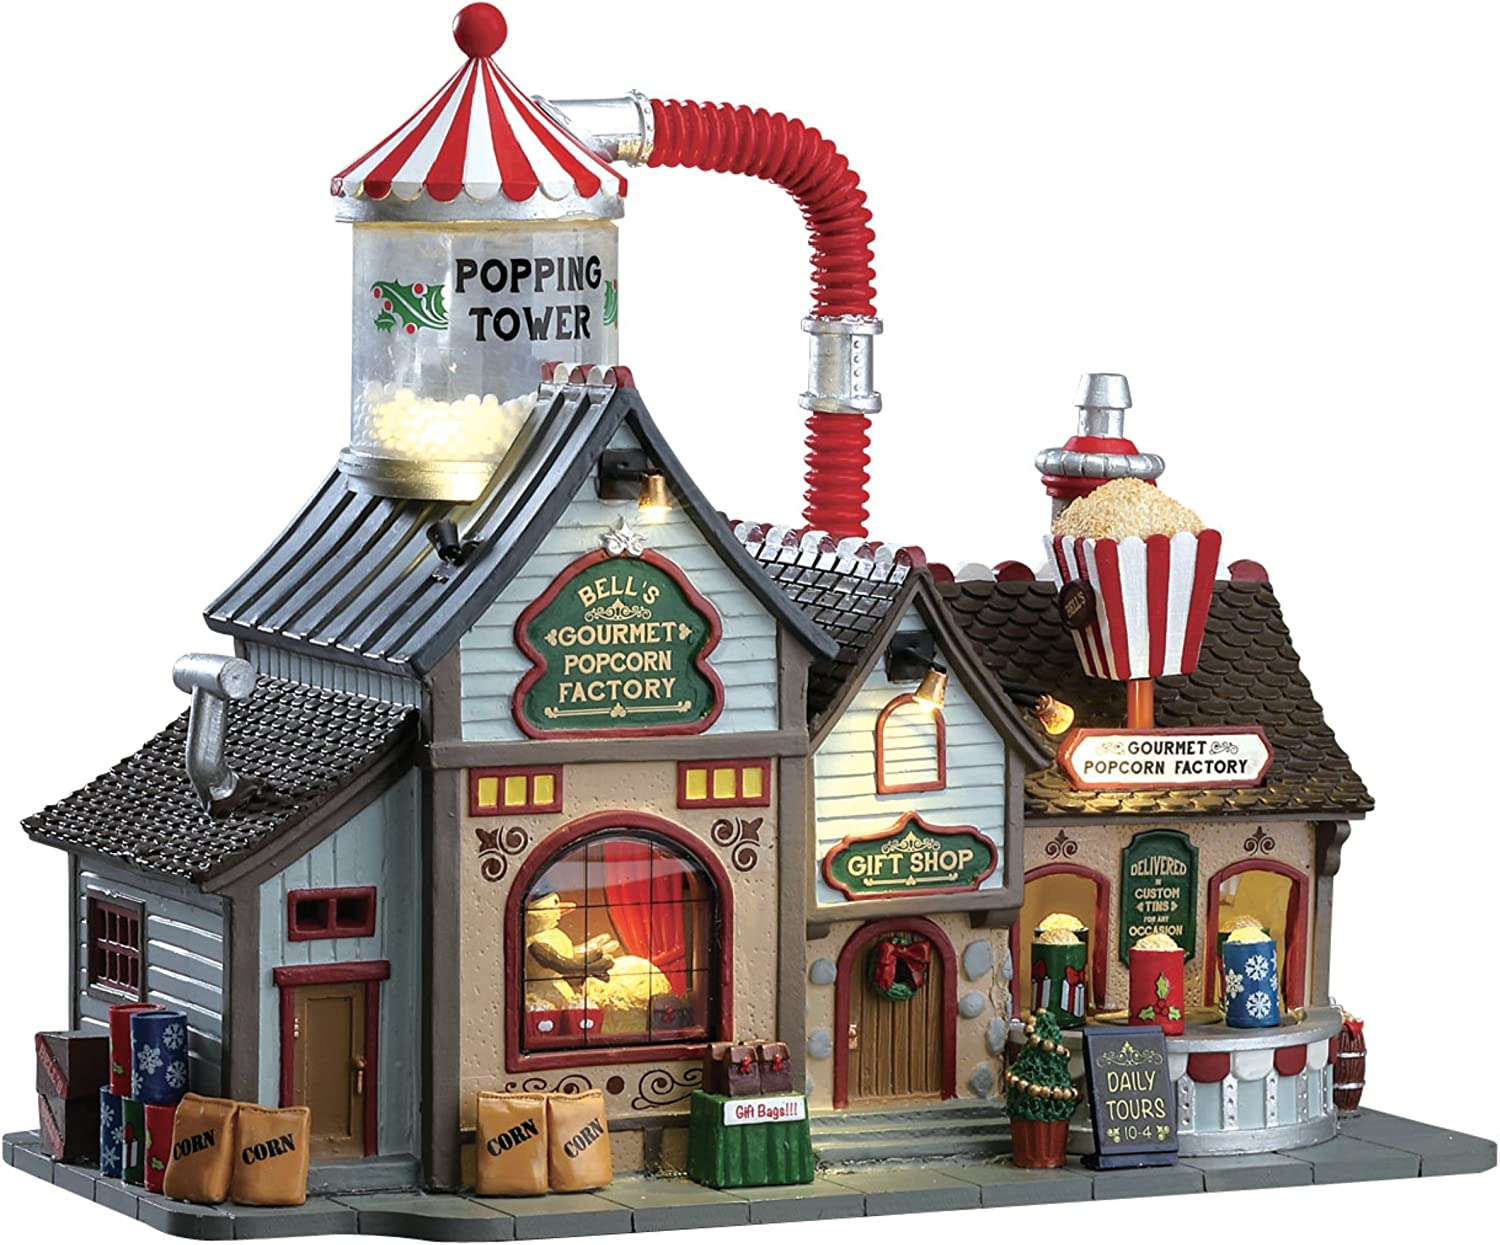 Carole Towne Christmas Village Patrick POPCORN FACTORY Sight Sound Animated New